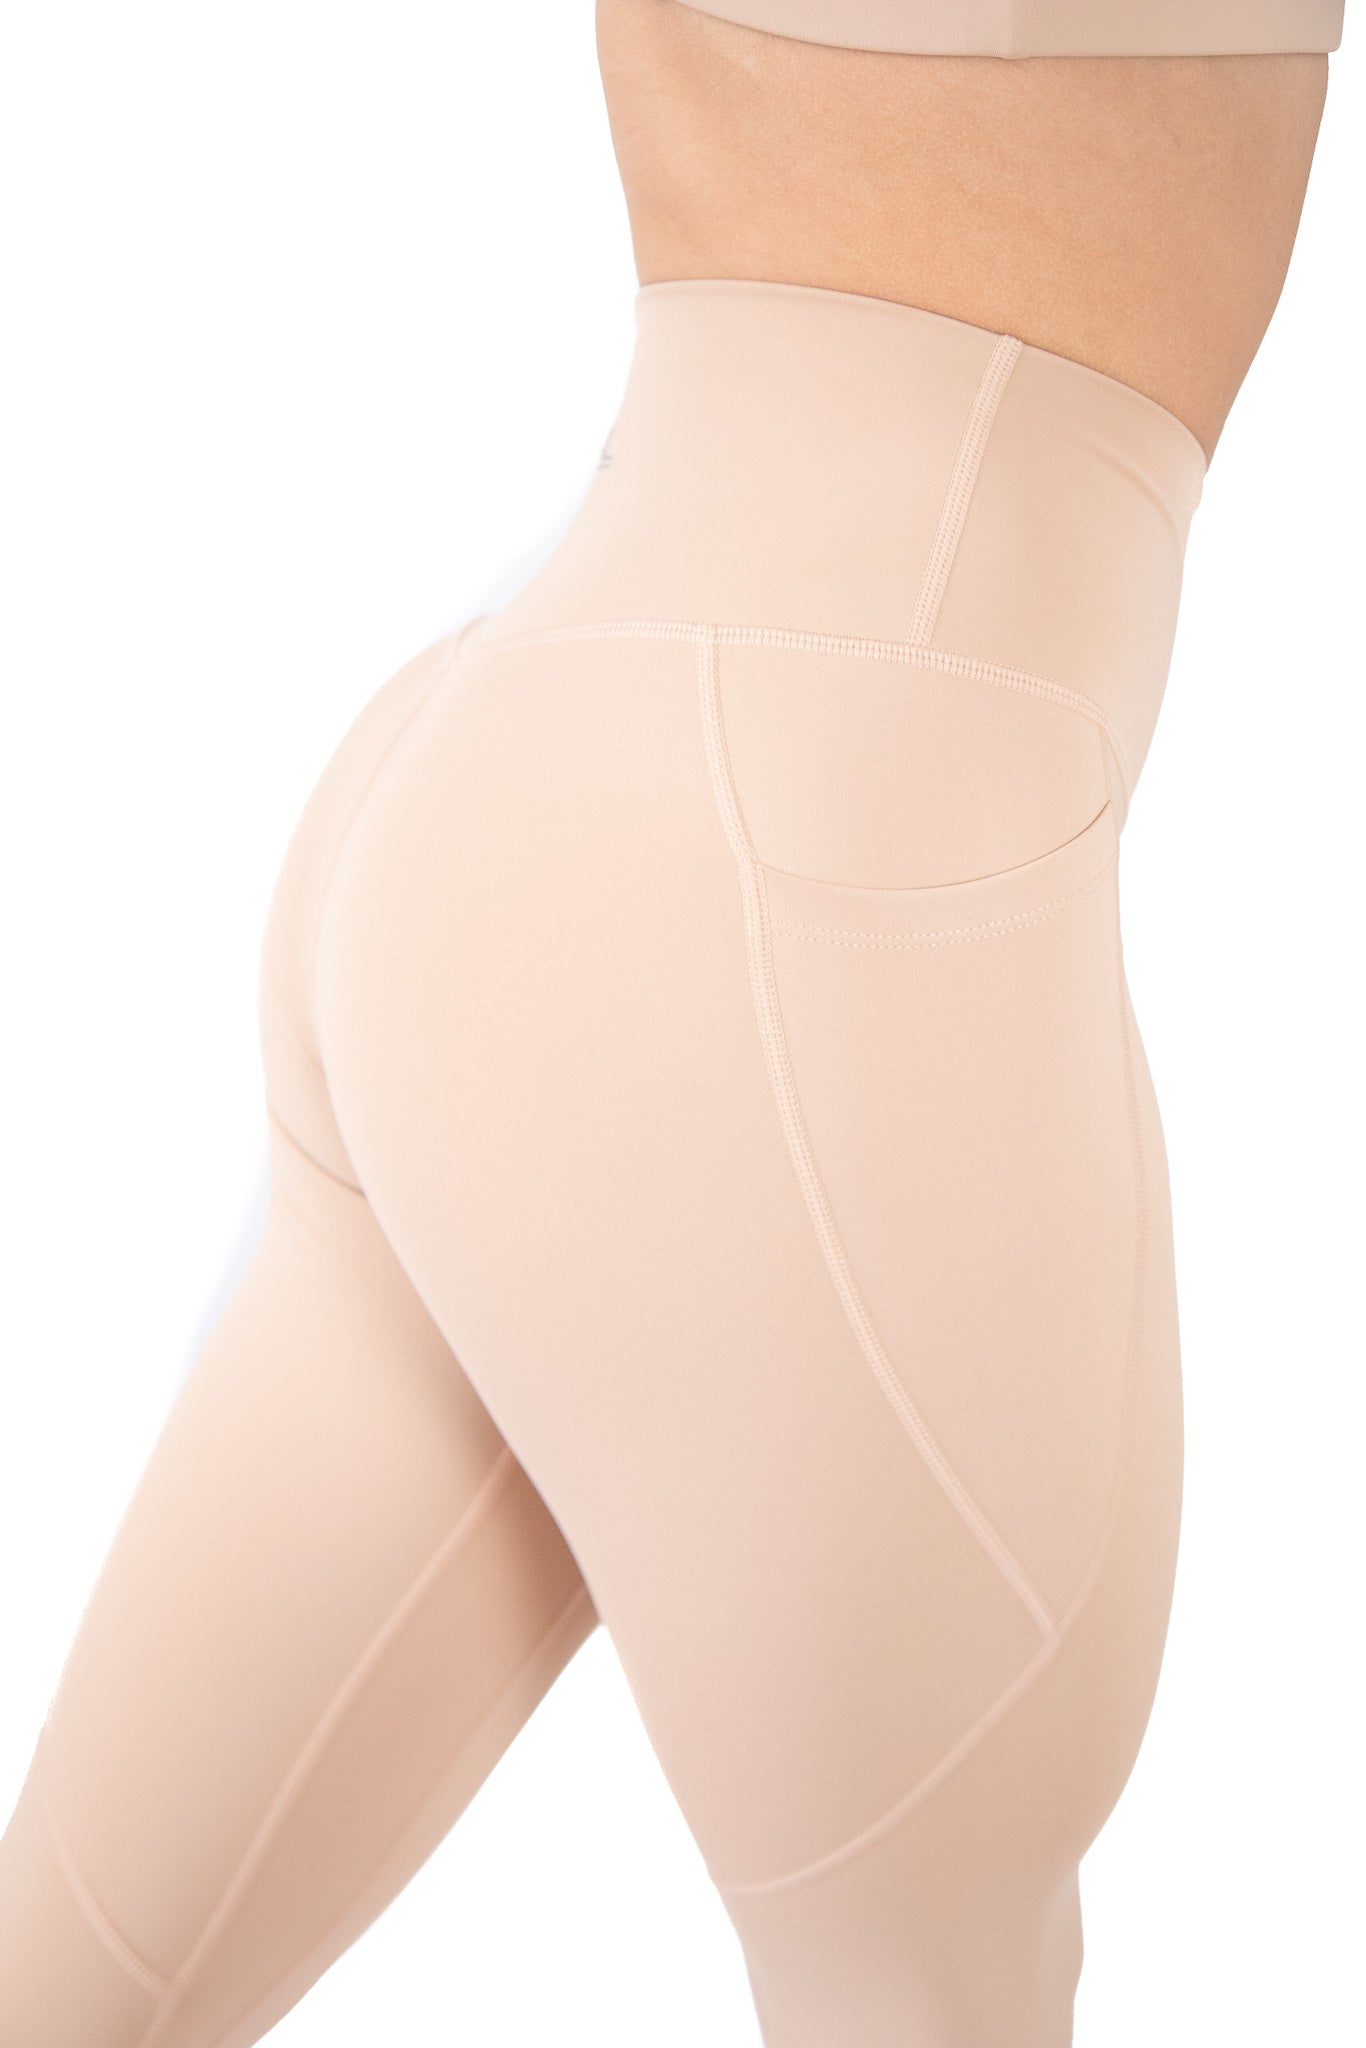 High Waisted Pocket Leggings Athletic Squat Proof Nude